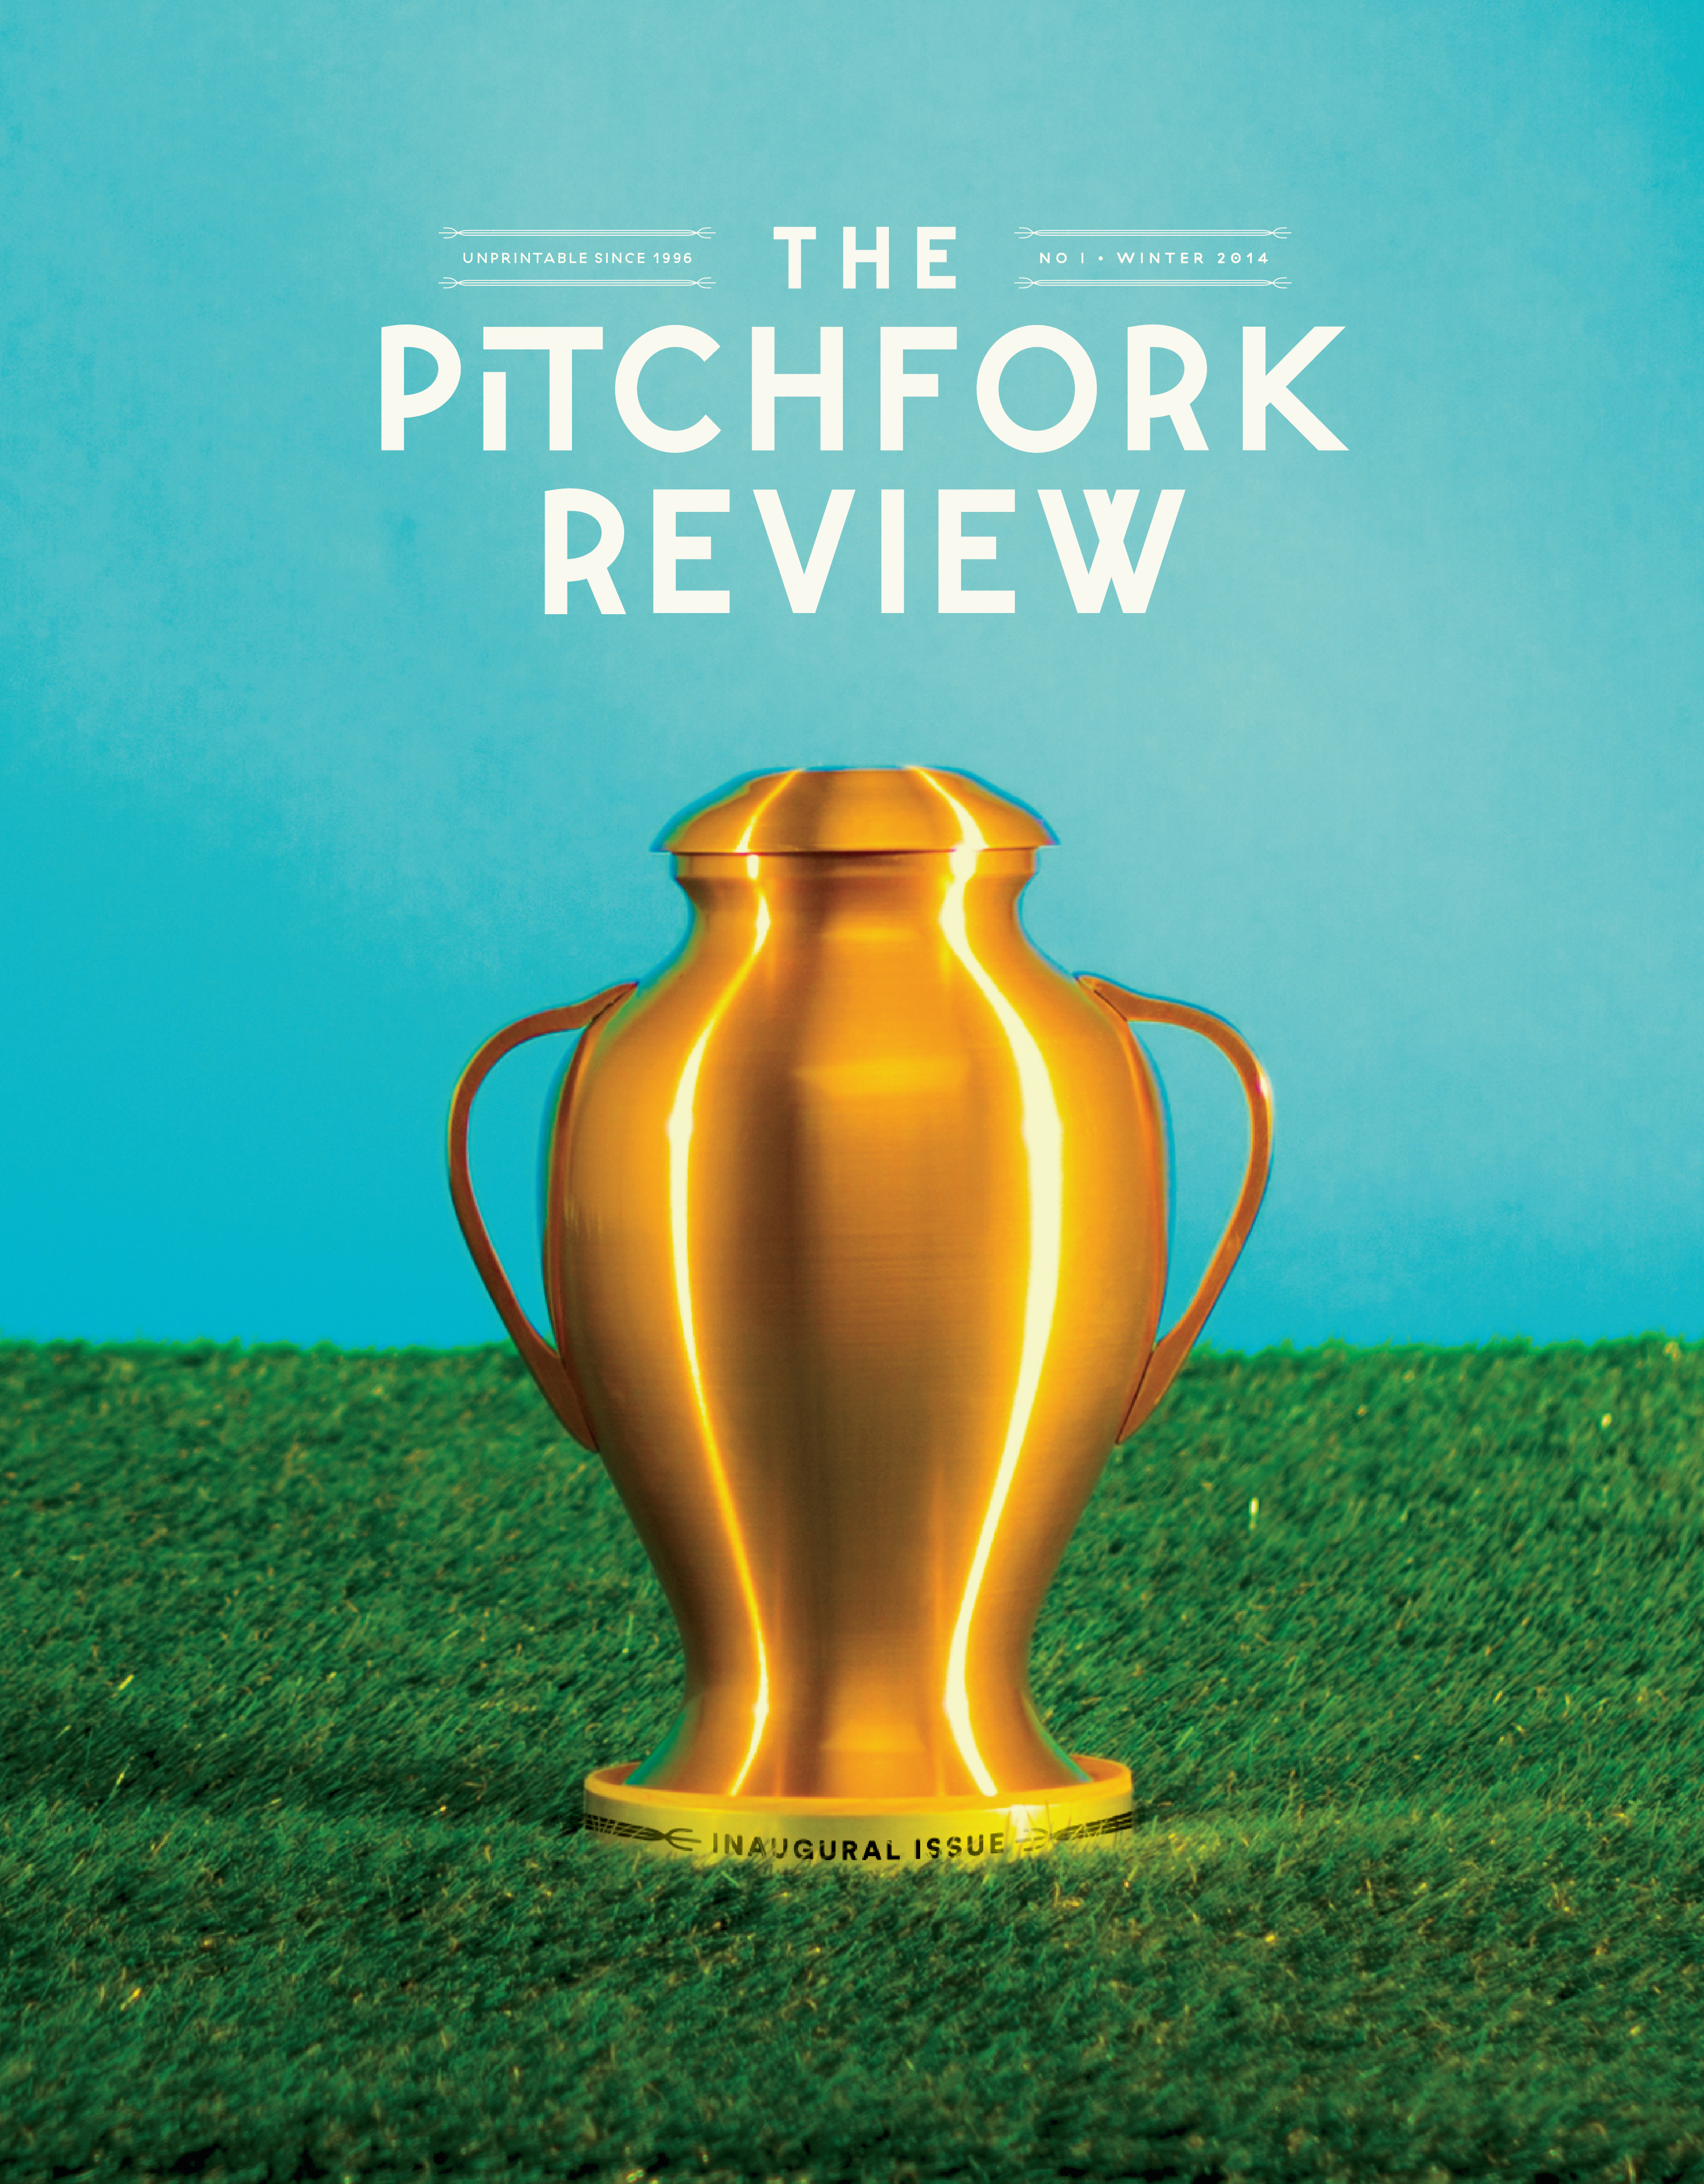 pitchfork in print – why a successful online magazine is adding a